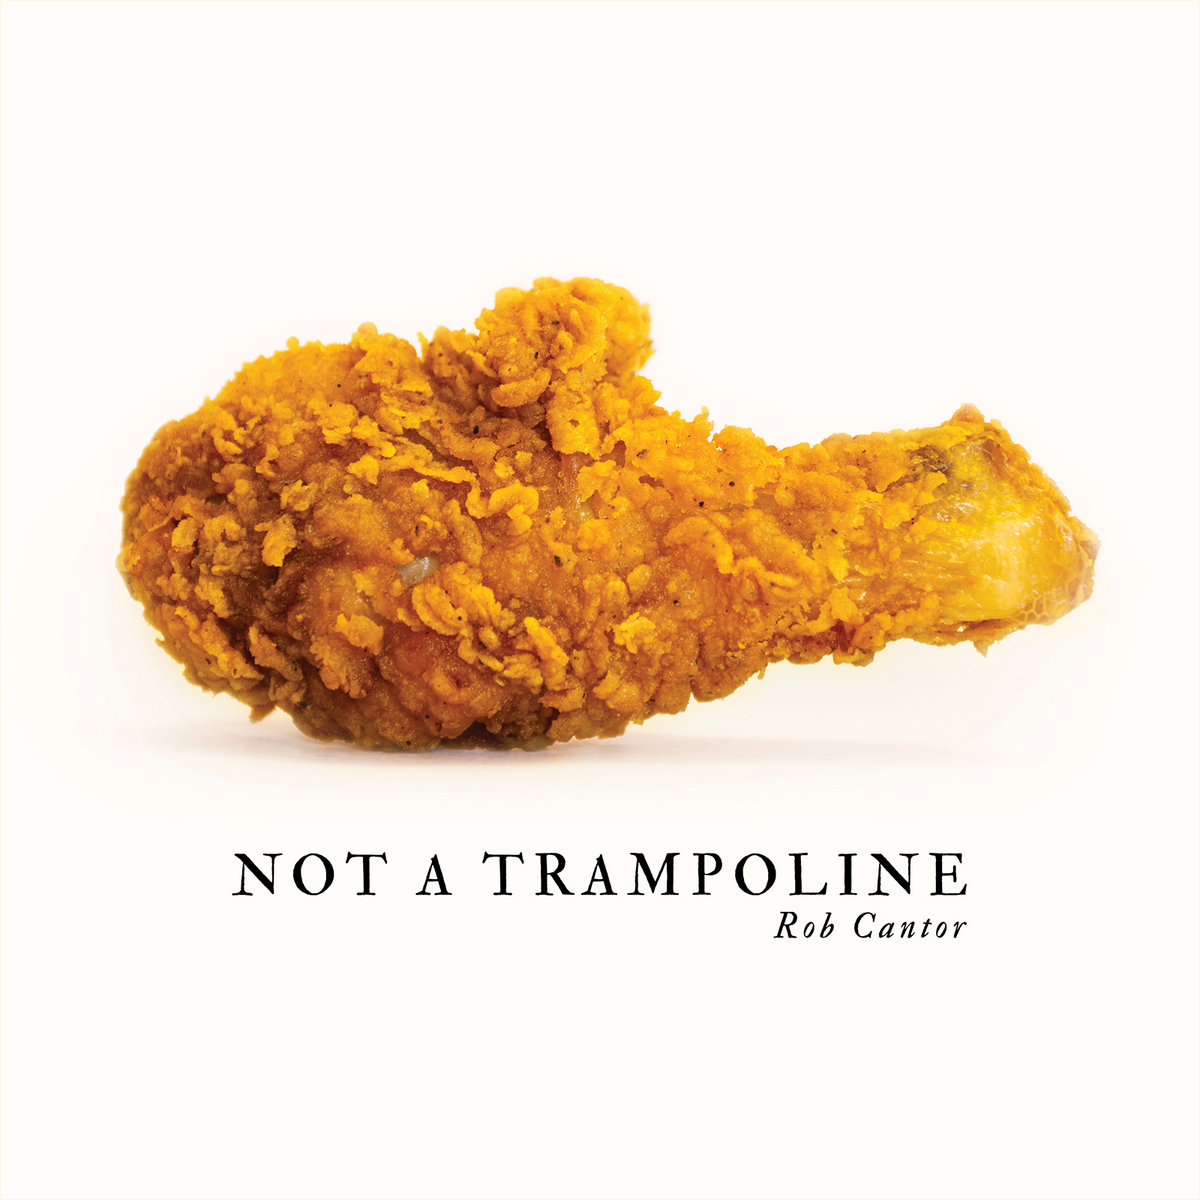 The cover of Not A Trampoline. It is a pristine photo of a chicken nugget.